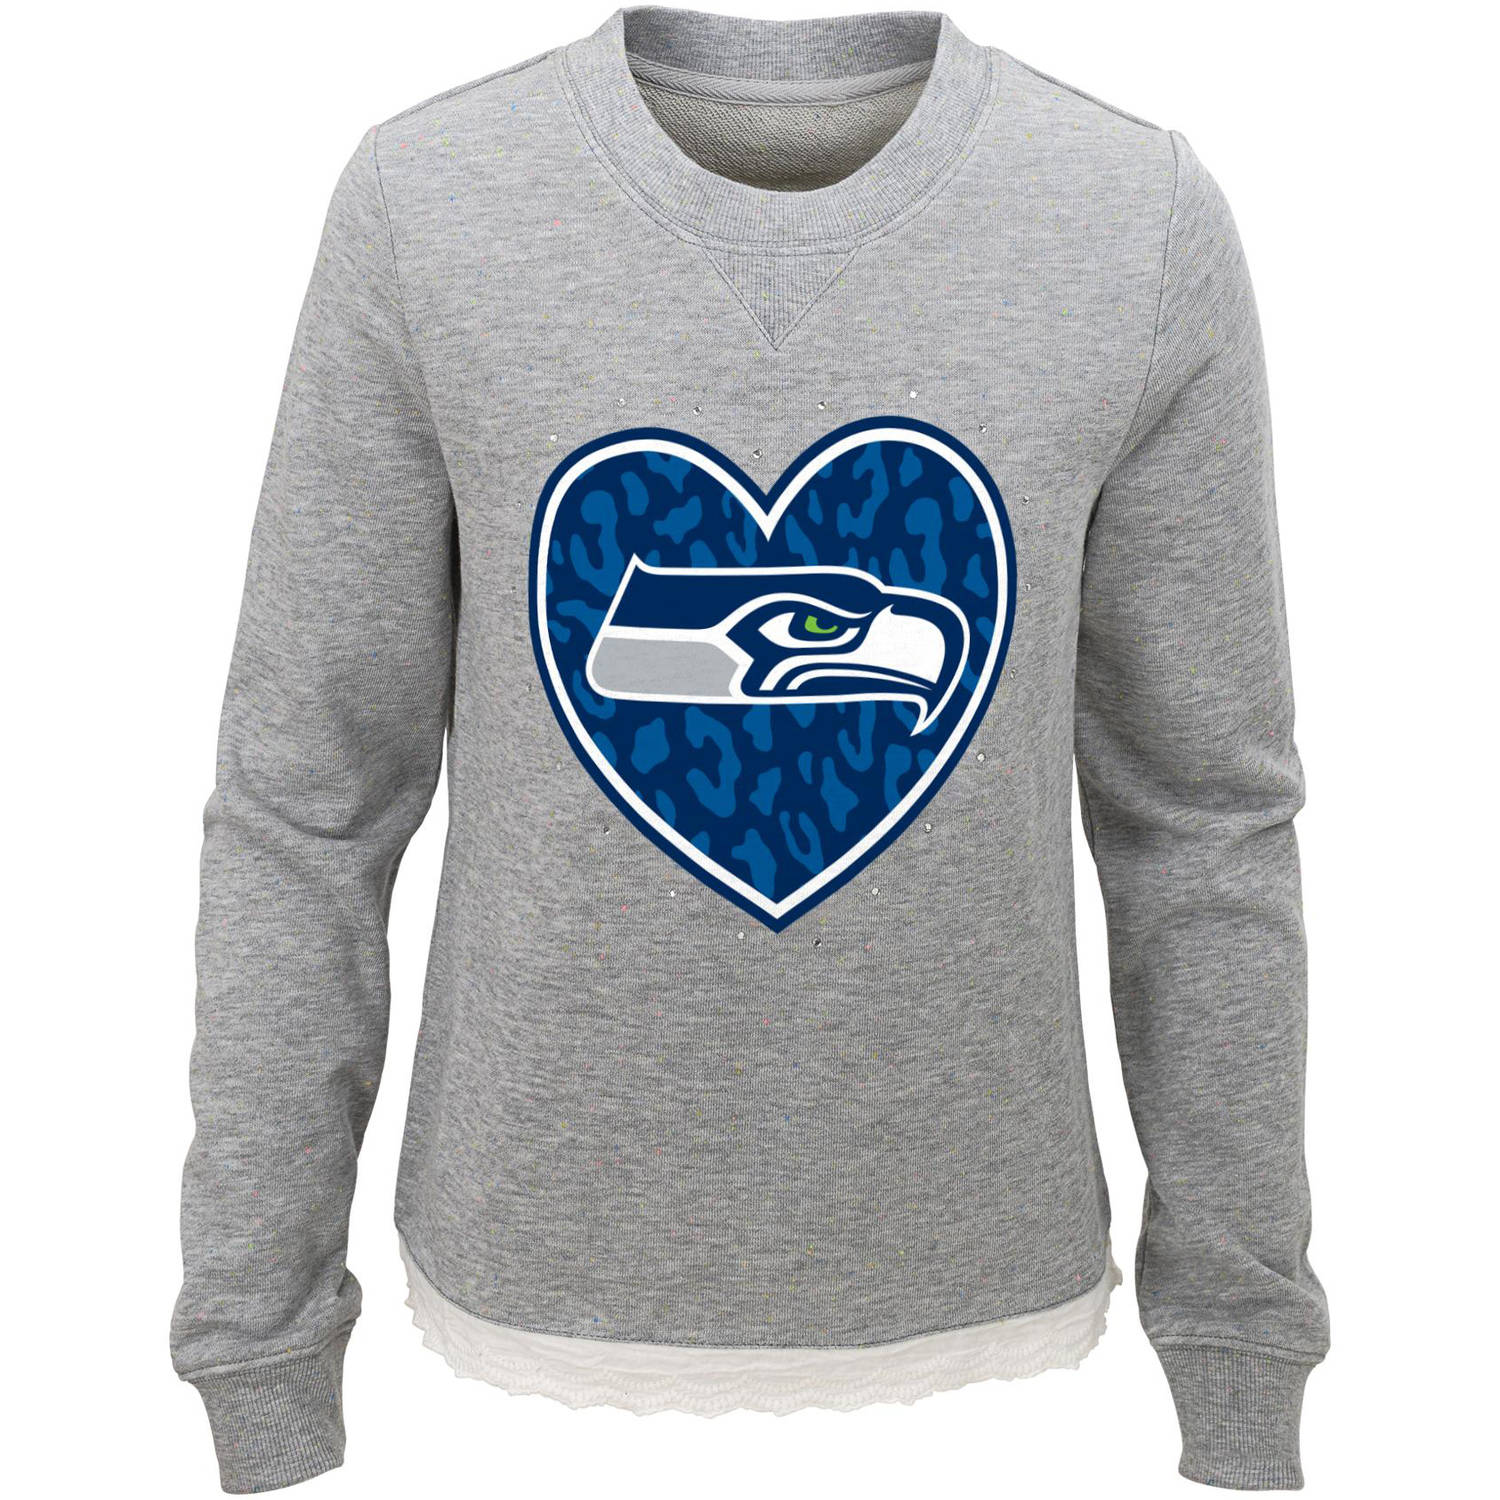 NFL Girls Seahawks Long Sleeve French Terry Crew Neck Fleece